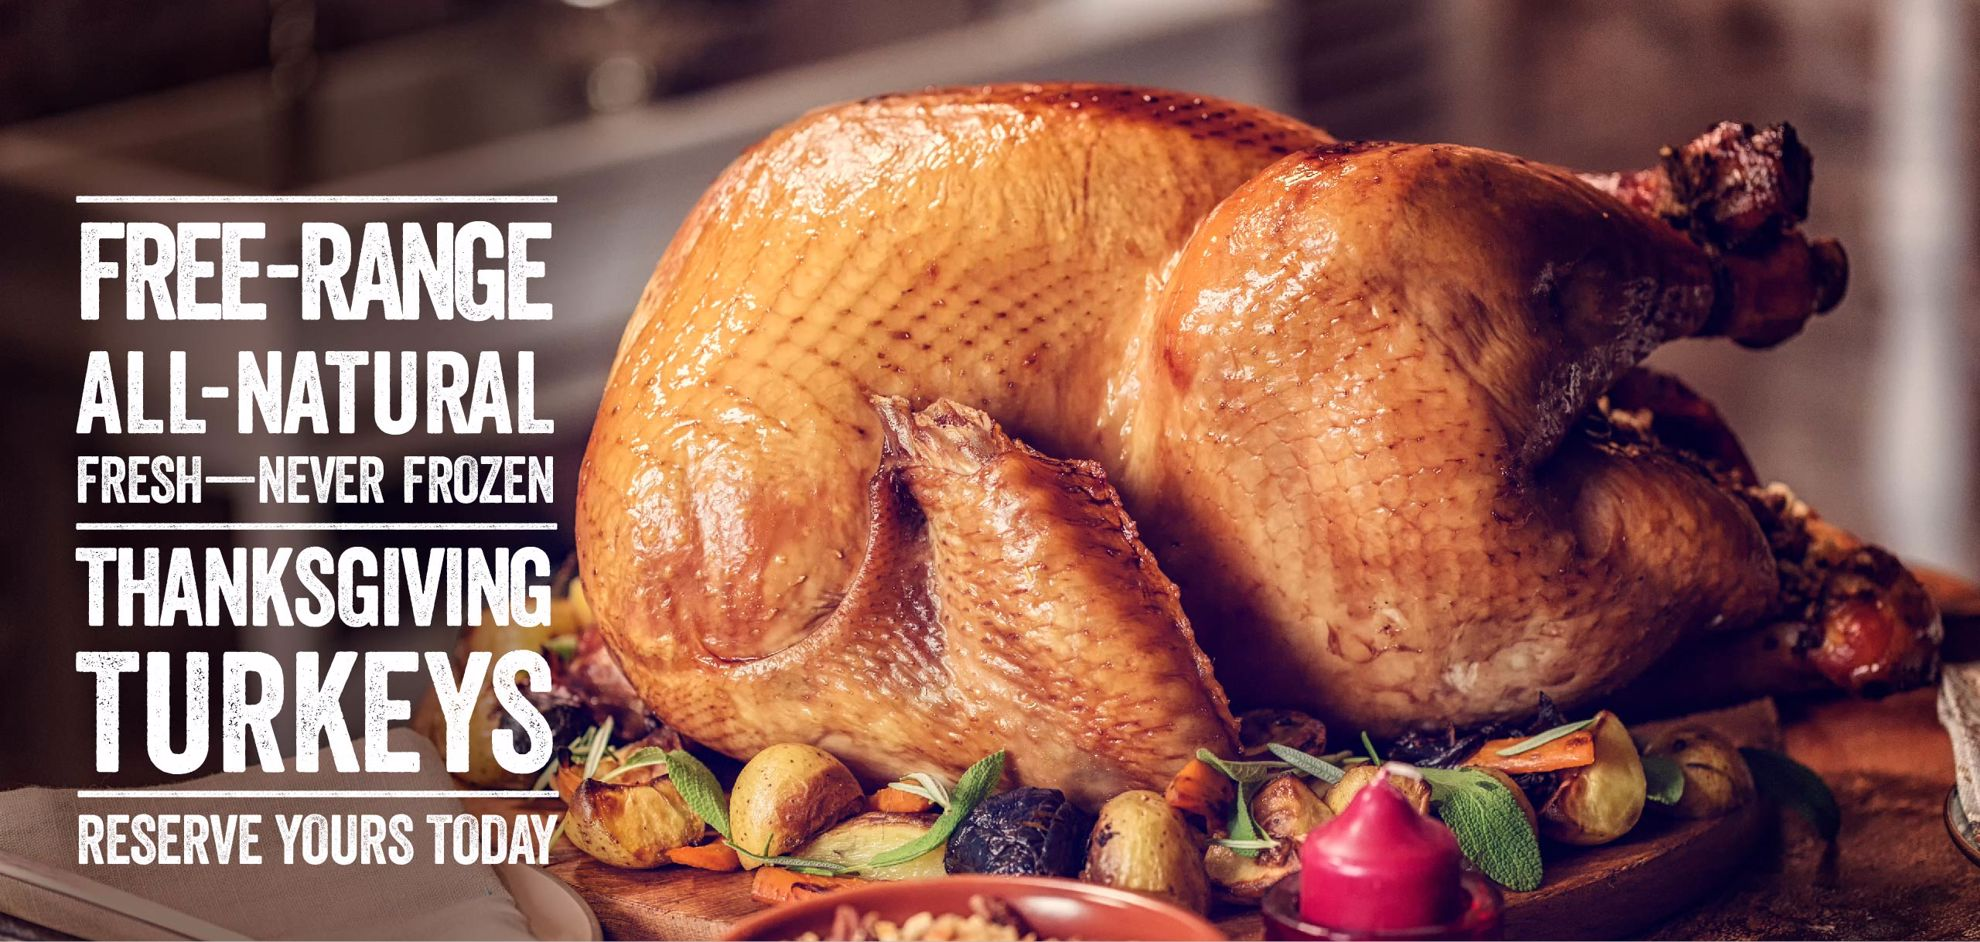 Save 50% off shipping your Thanksgiving Turkey!